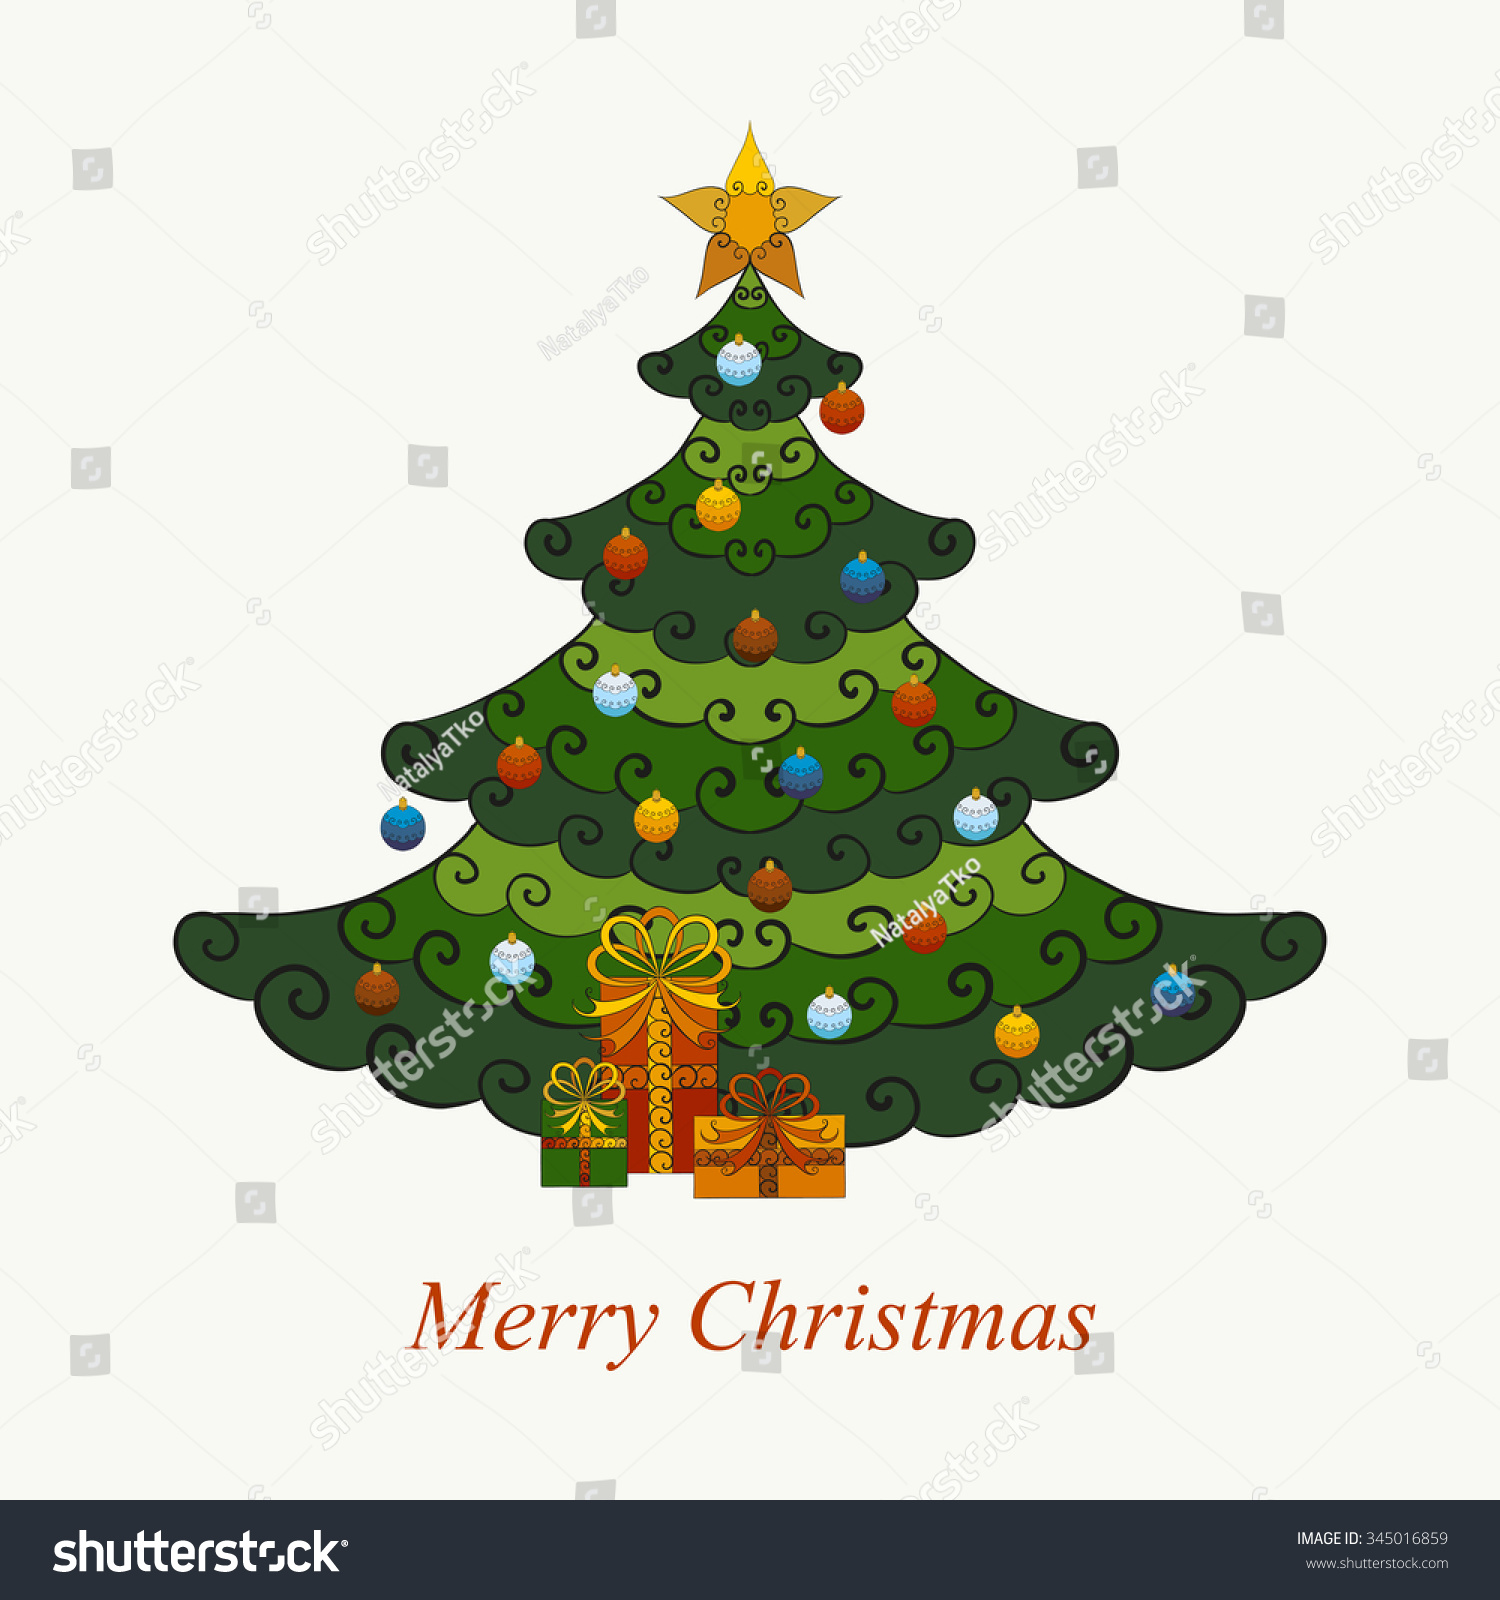 Abstract Vector Illustration Christmas Tree Decorated Stock Vector ...